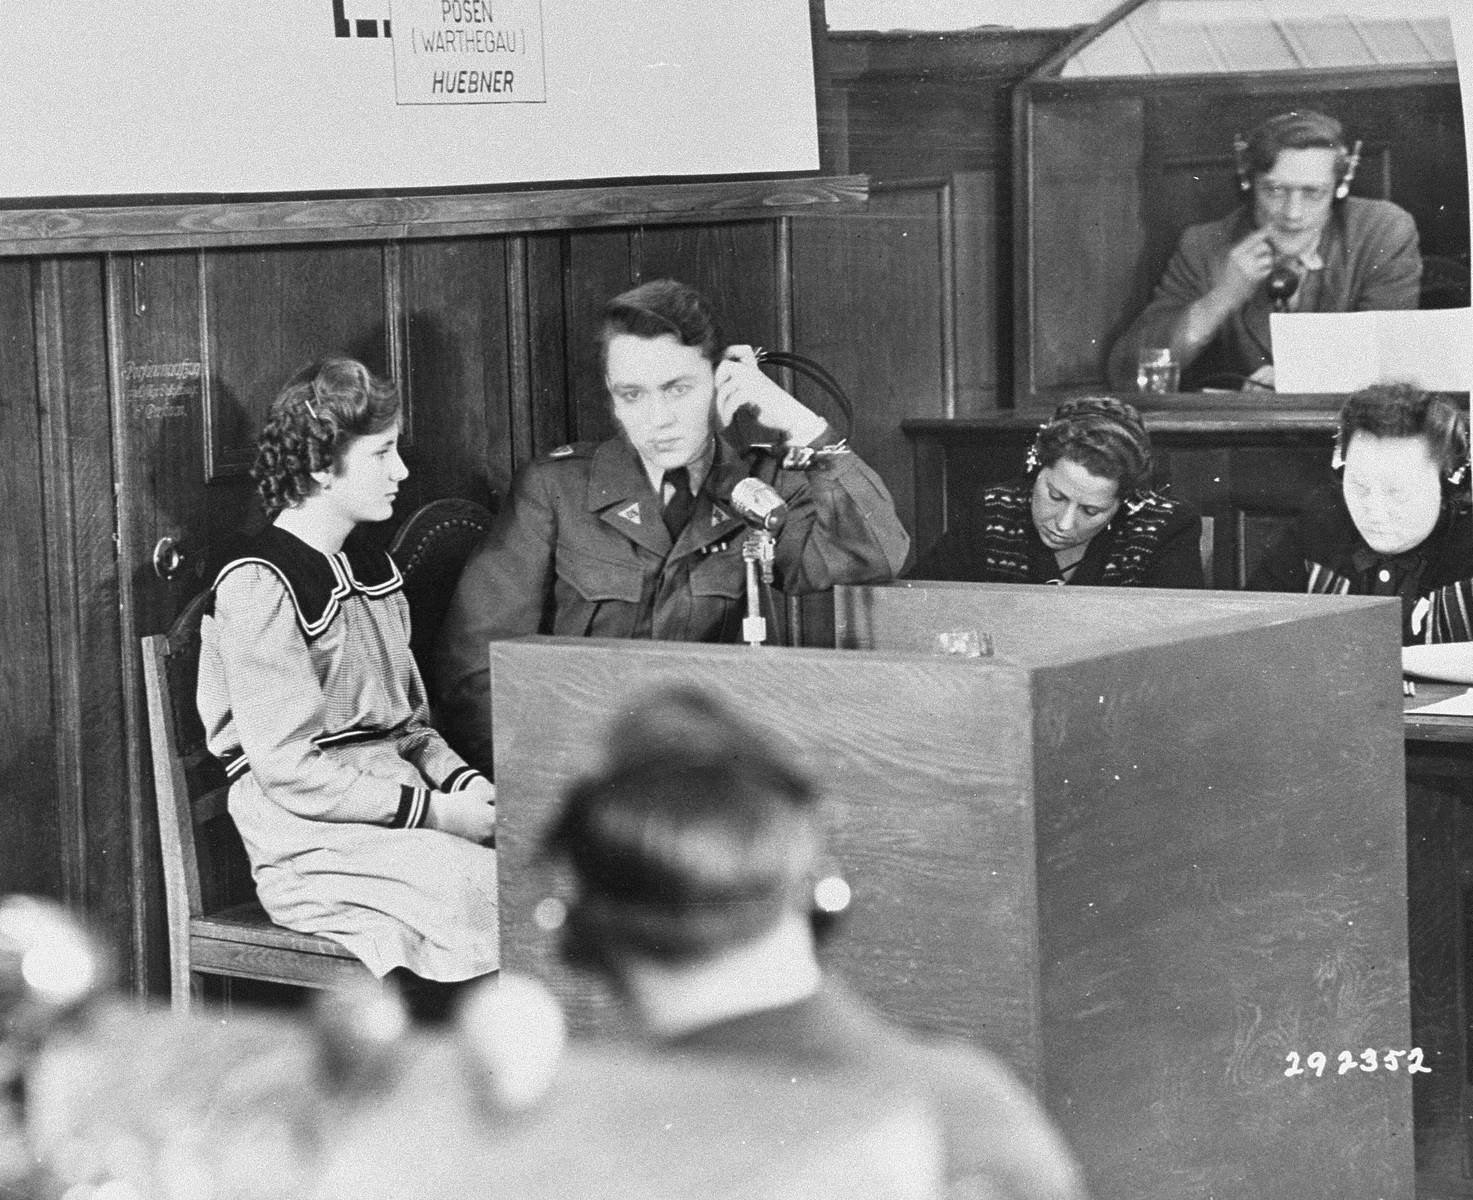 Fifteen-year-old Maria Dolezalova testifies for the prosecution at the RuSHA Trial.  She was one of the children kidnapped by the Germans after they destroyed the town of Lidice, Czechoslovakia.